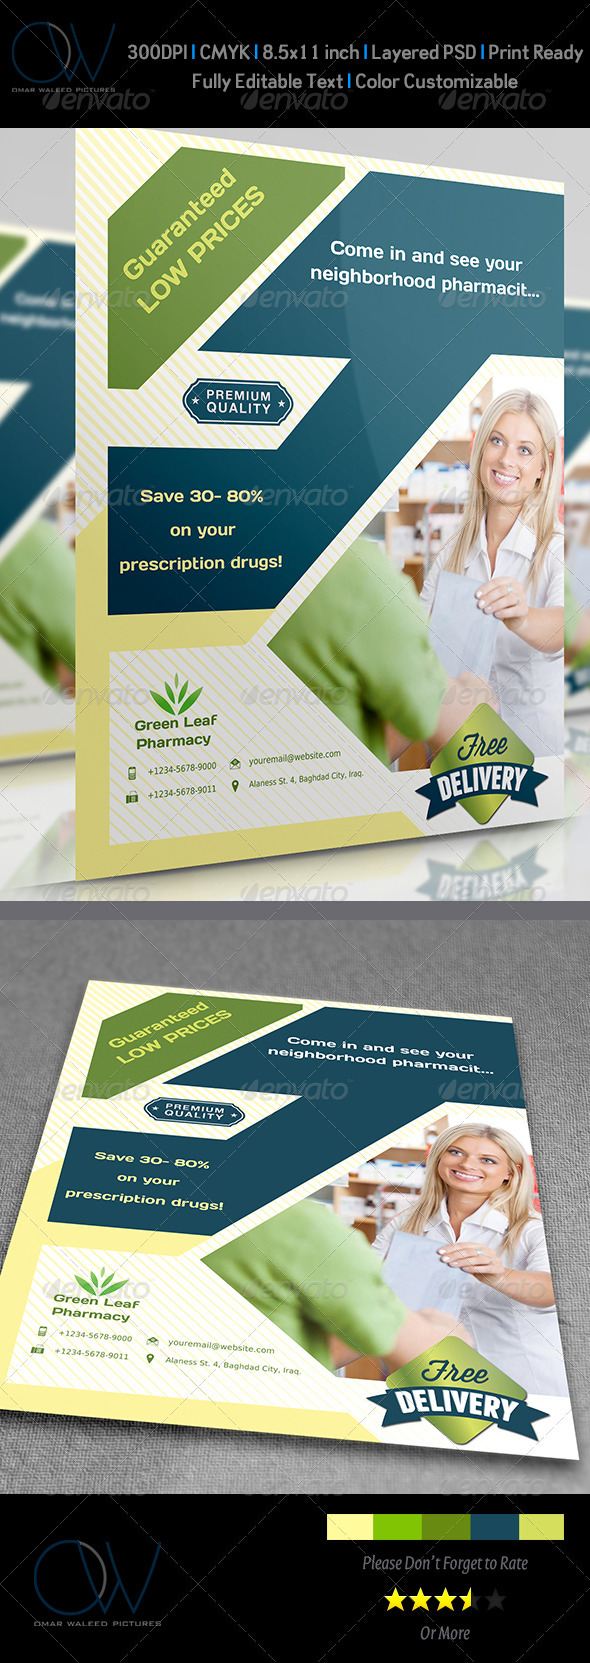 Pharmacy Flyer - Corporate Flyers